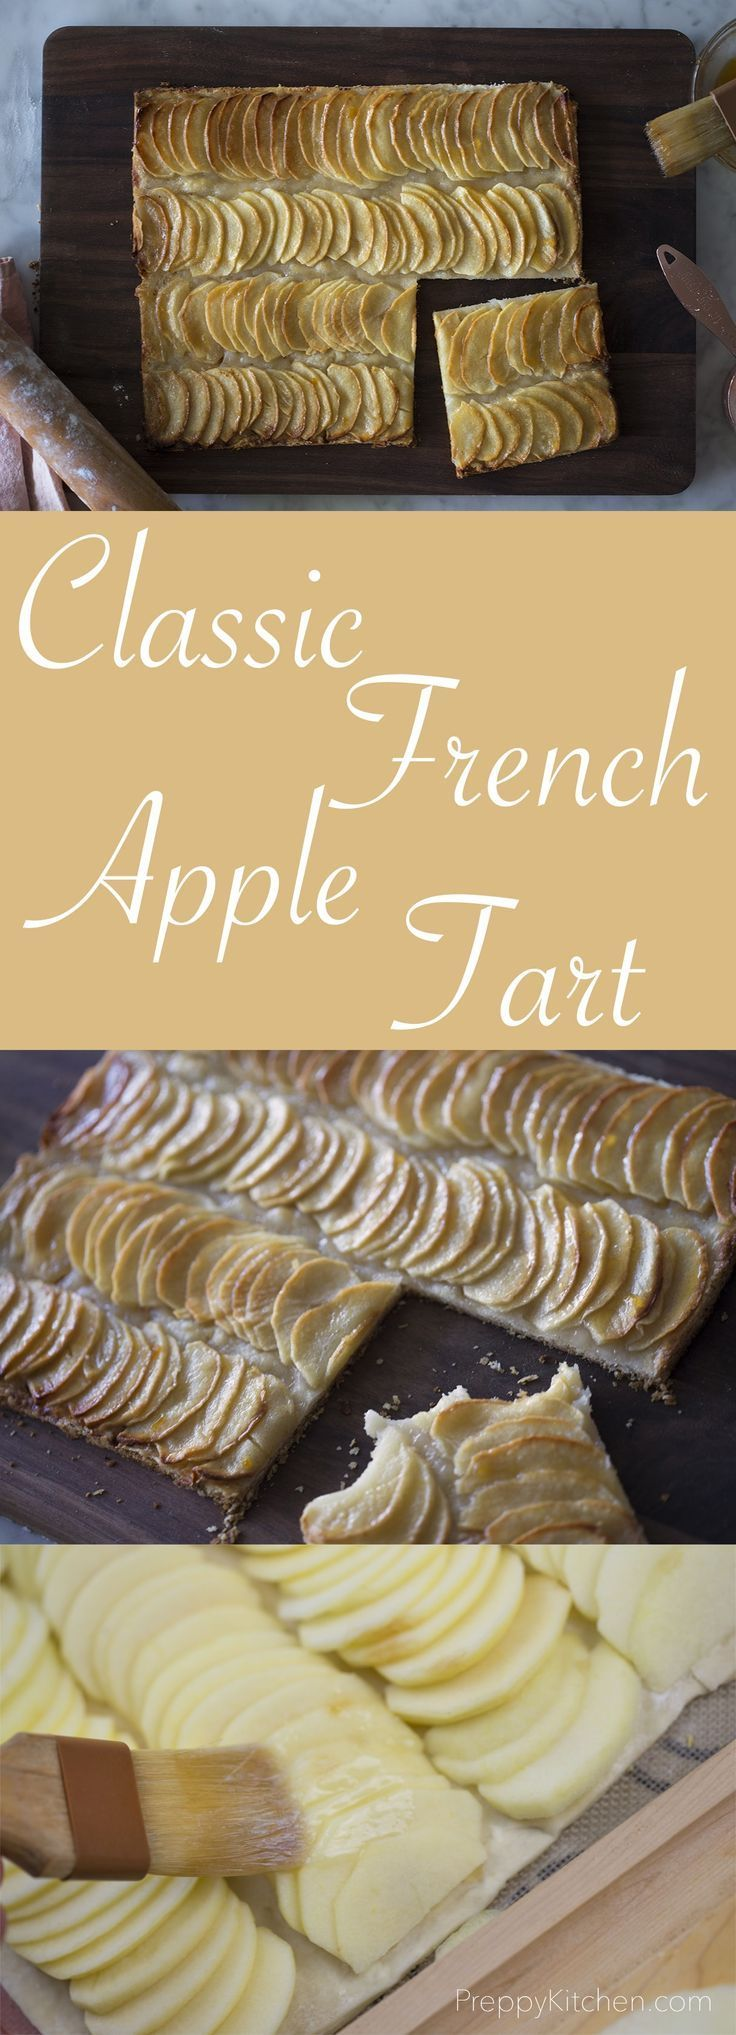 A classic french apple tart really highlights the natural flavor of fresh apples and is so easy to make. Full recipe on the blog. via /preppykitchen/